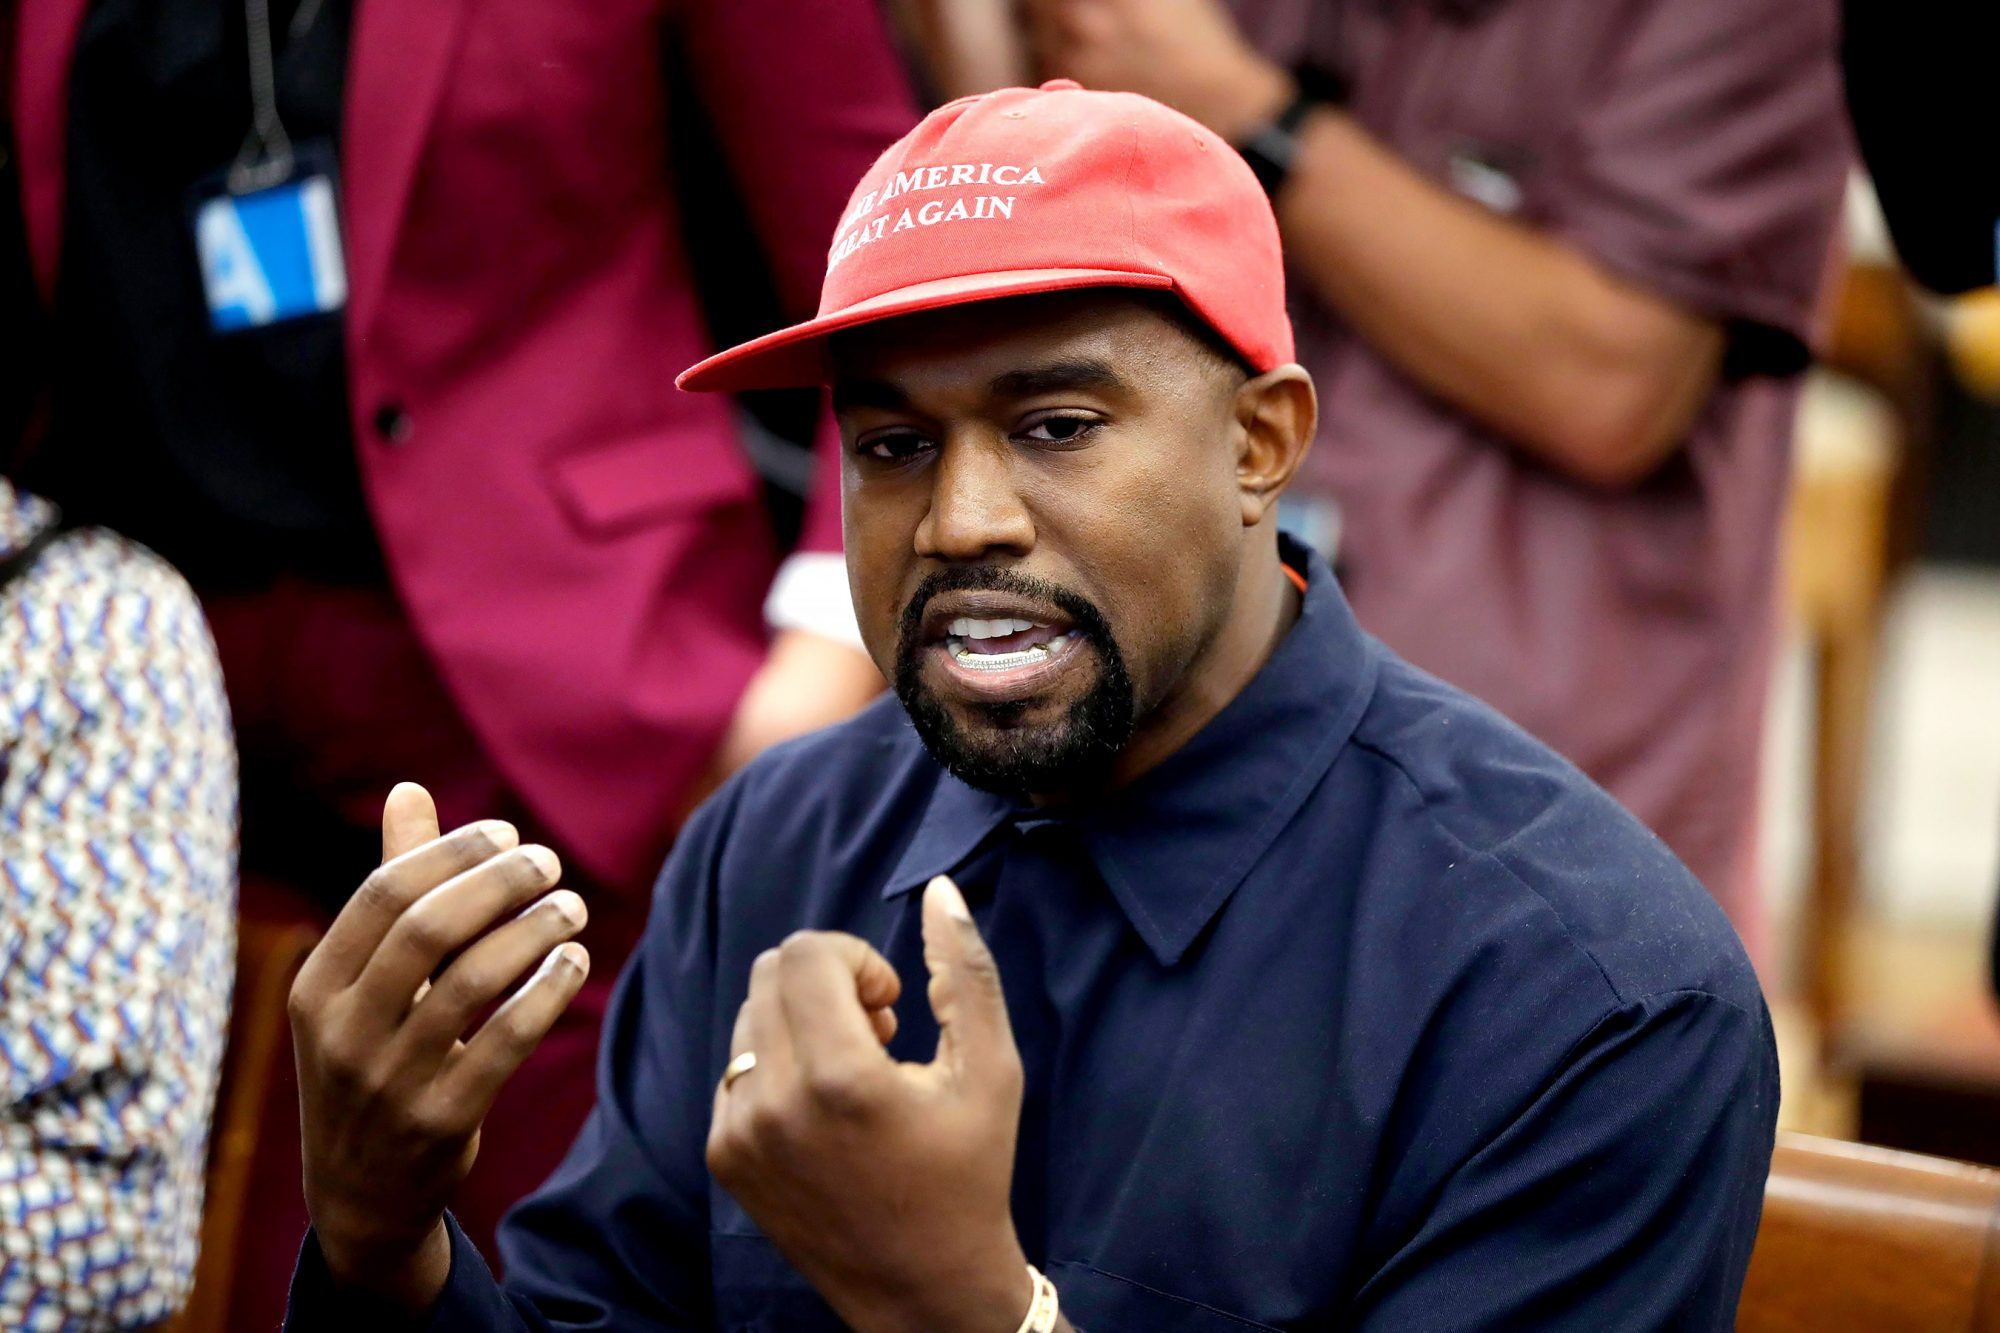 Trump Kanye West, Washington, USA - 11 Oct 2018